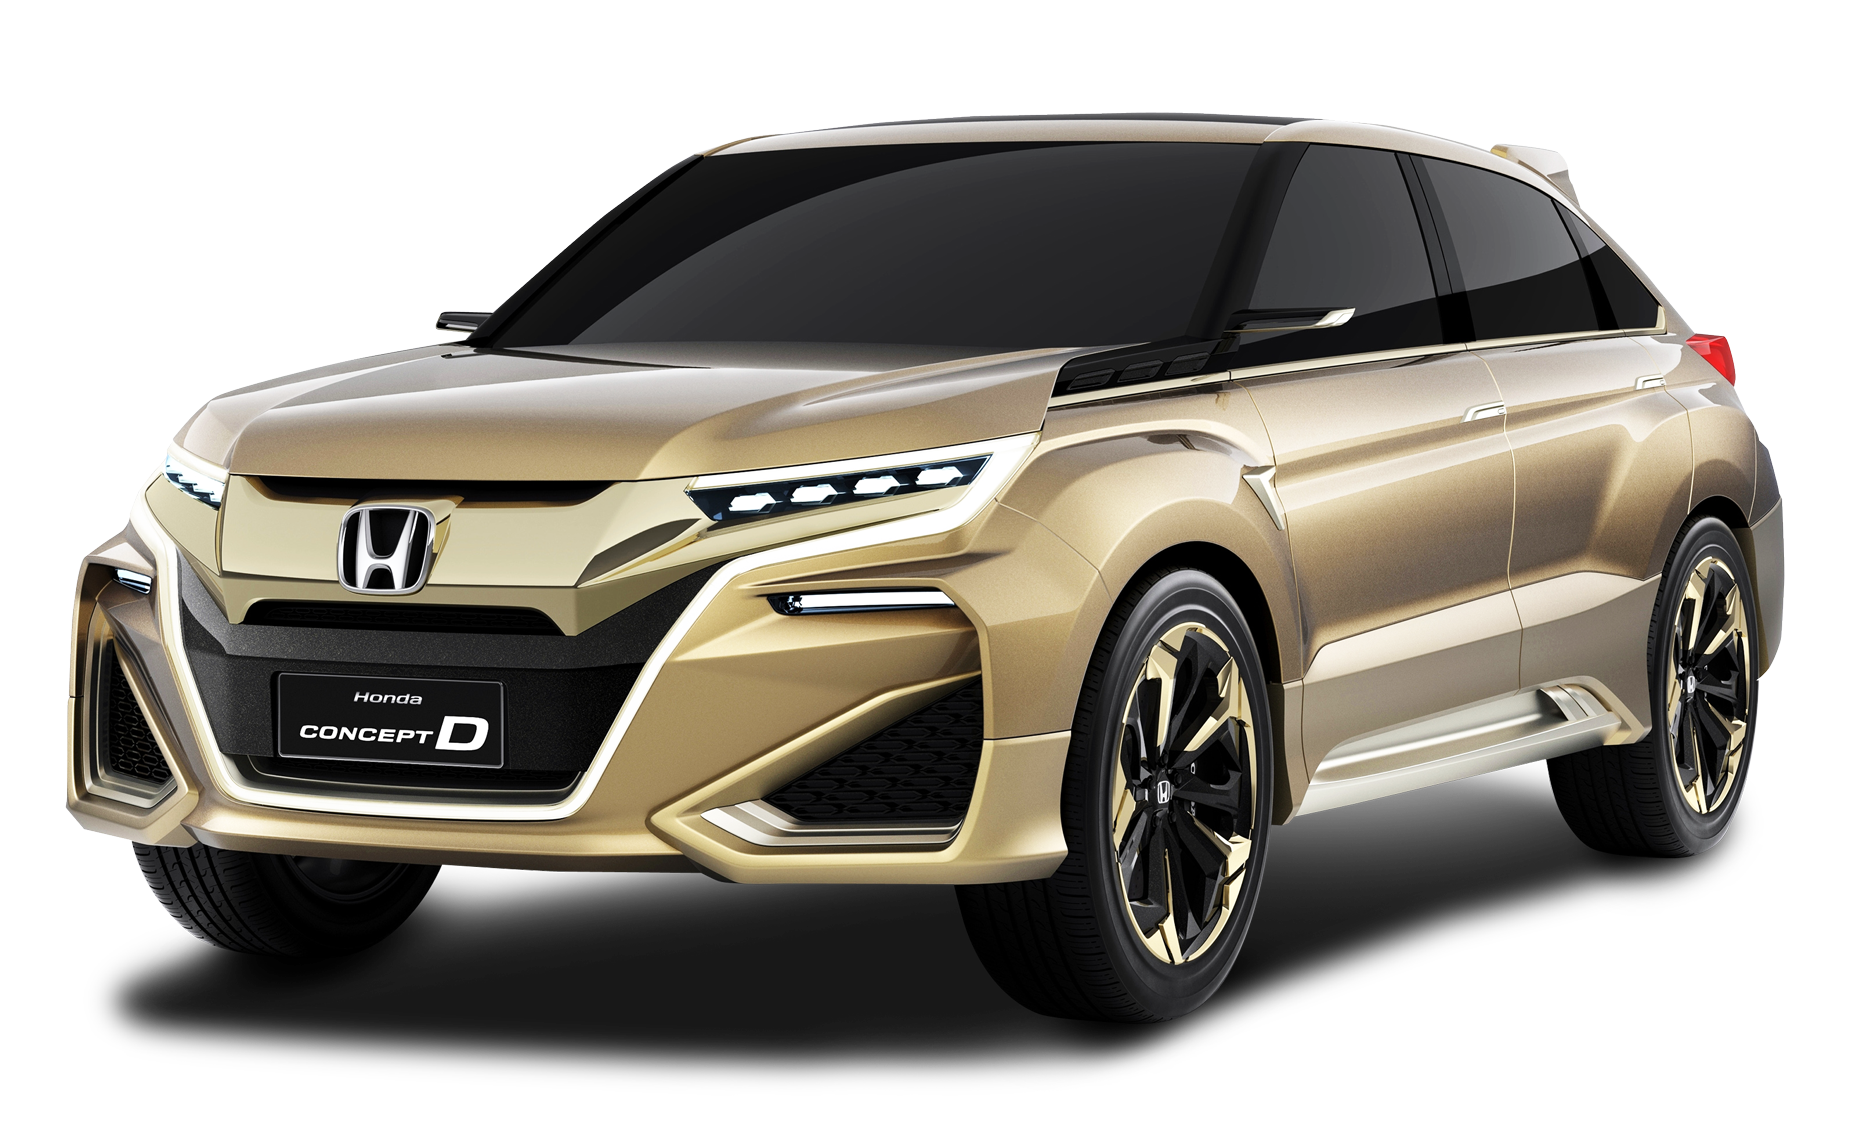 Gold car clipart clip art freeuse stock Gold Honda Concept D Car PNG Image - PurePNG | Free transparent CC0 ... clip art freeuse stock